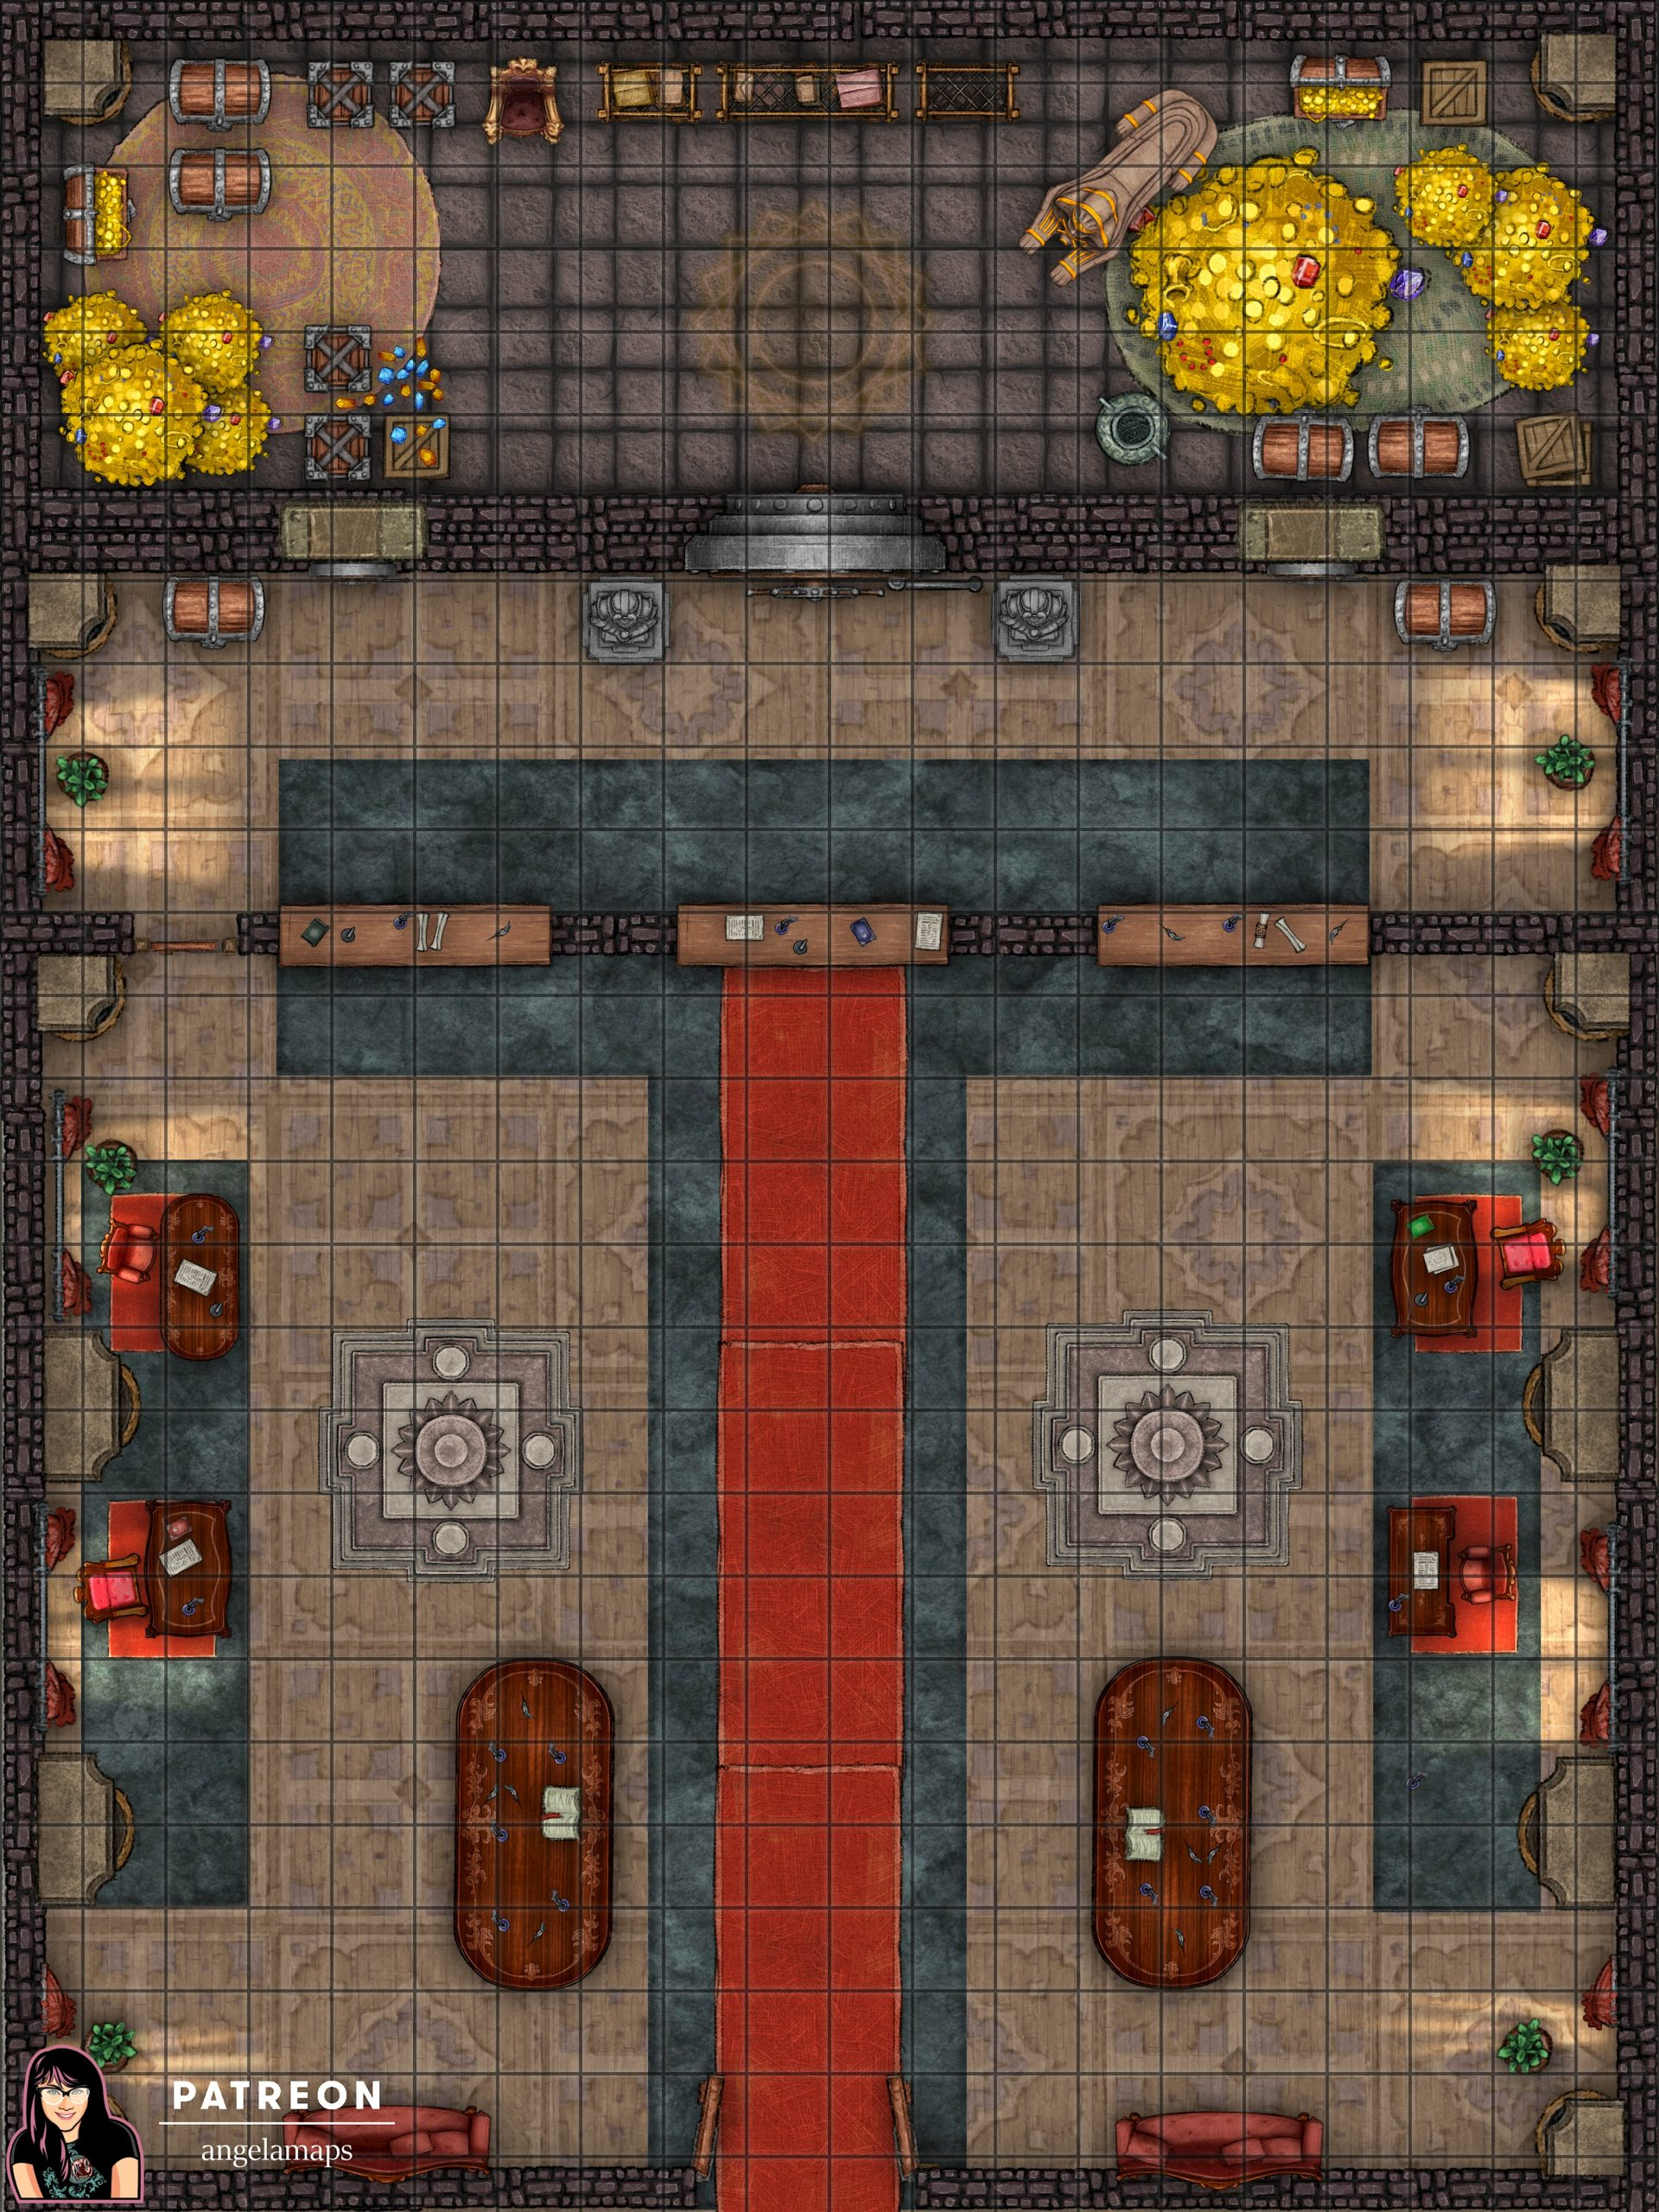 Bank battle map for D&D or Pathfinder with fantasy grounds support